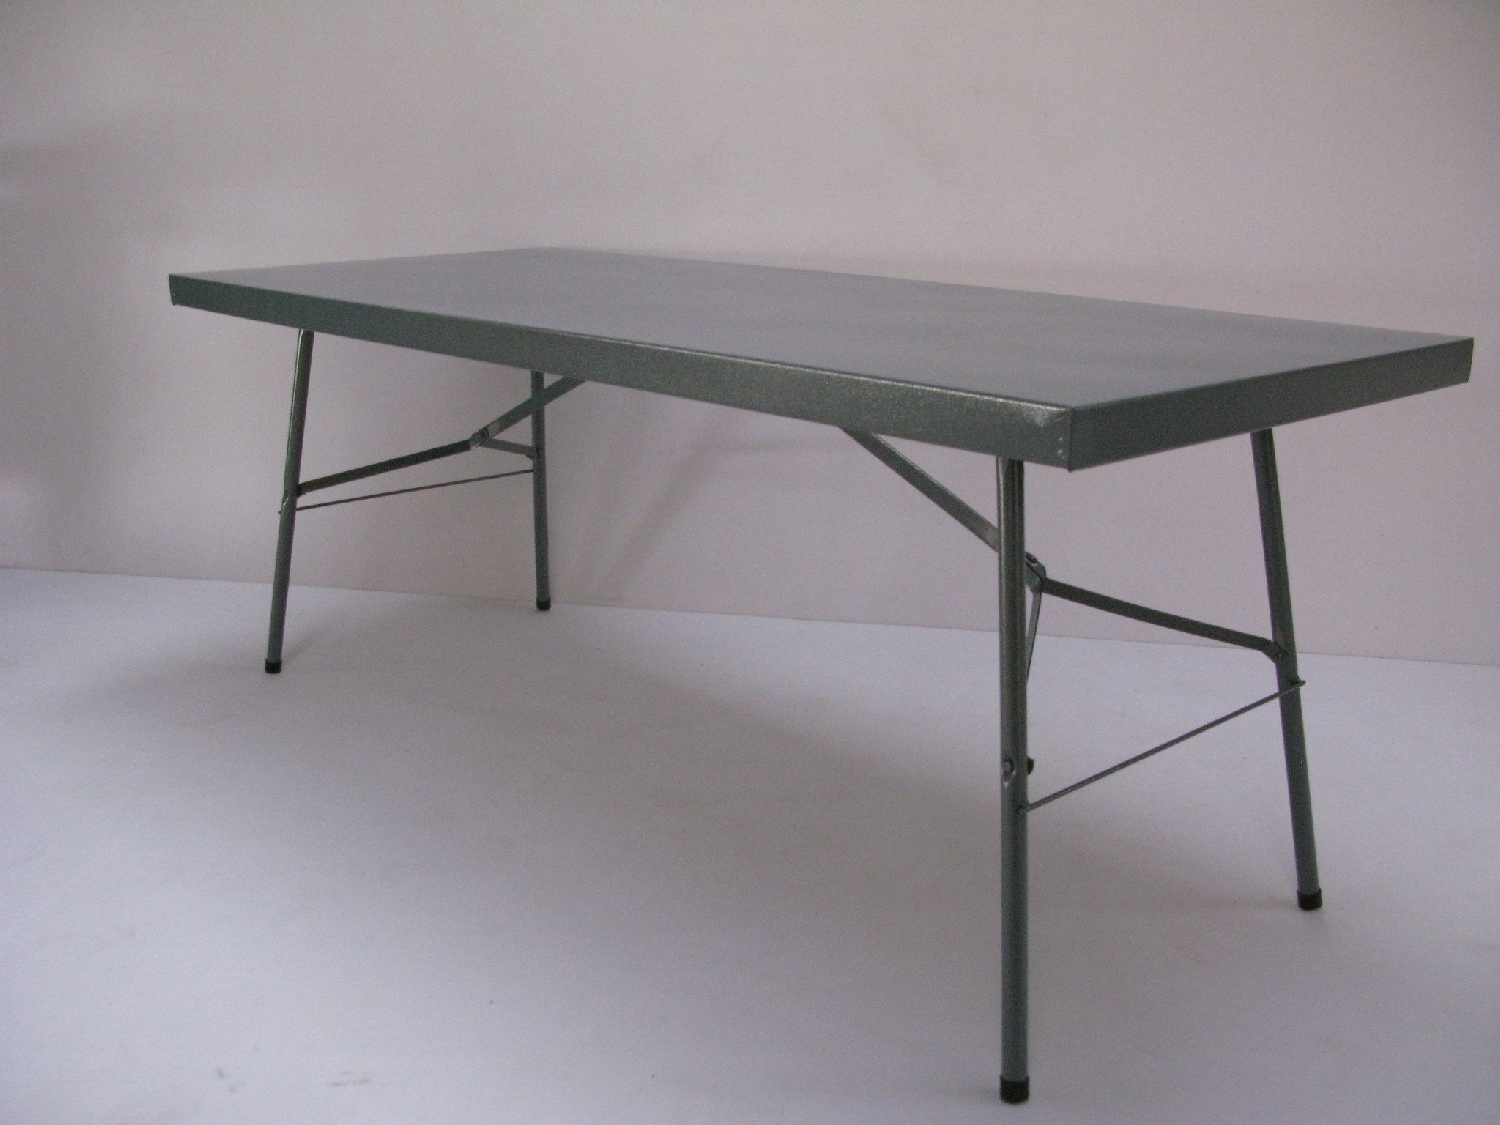 101-party-hire--trestle-table-hire--table-hire-